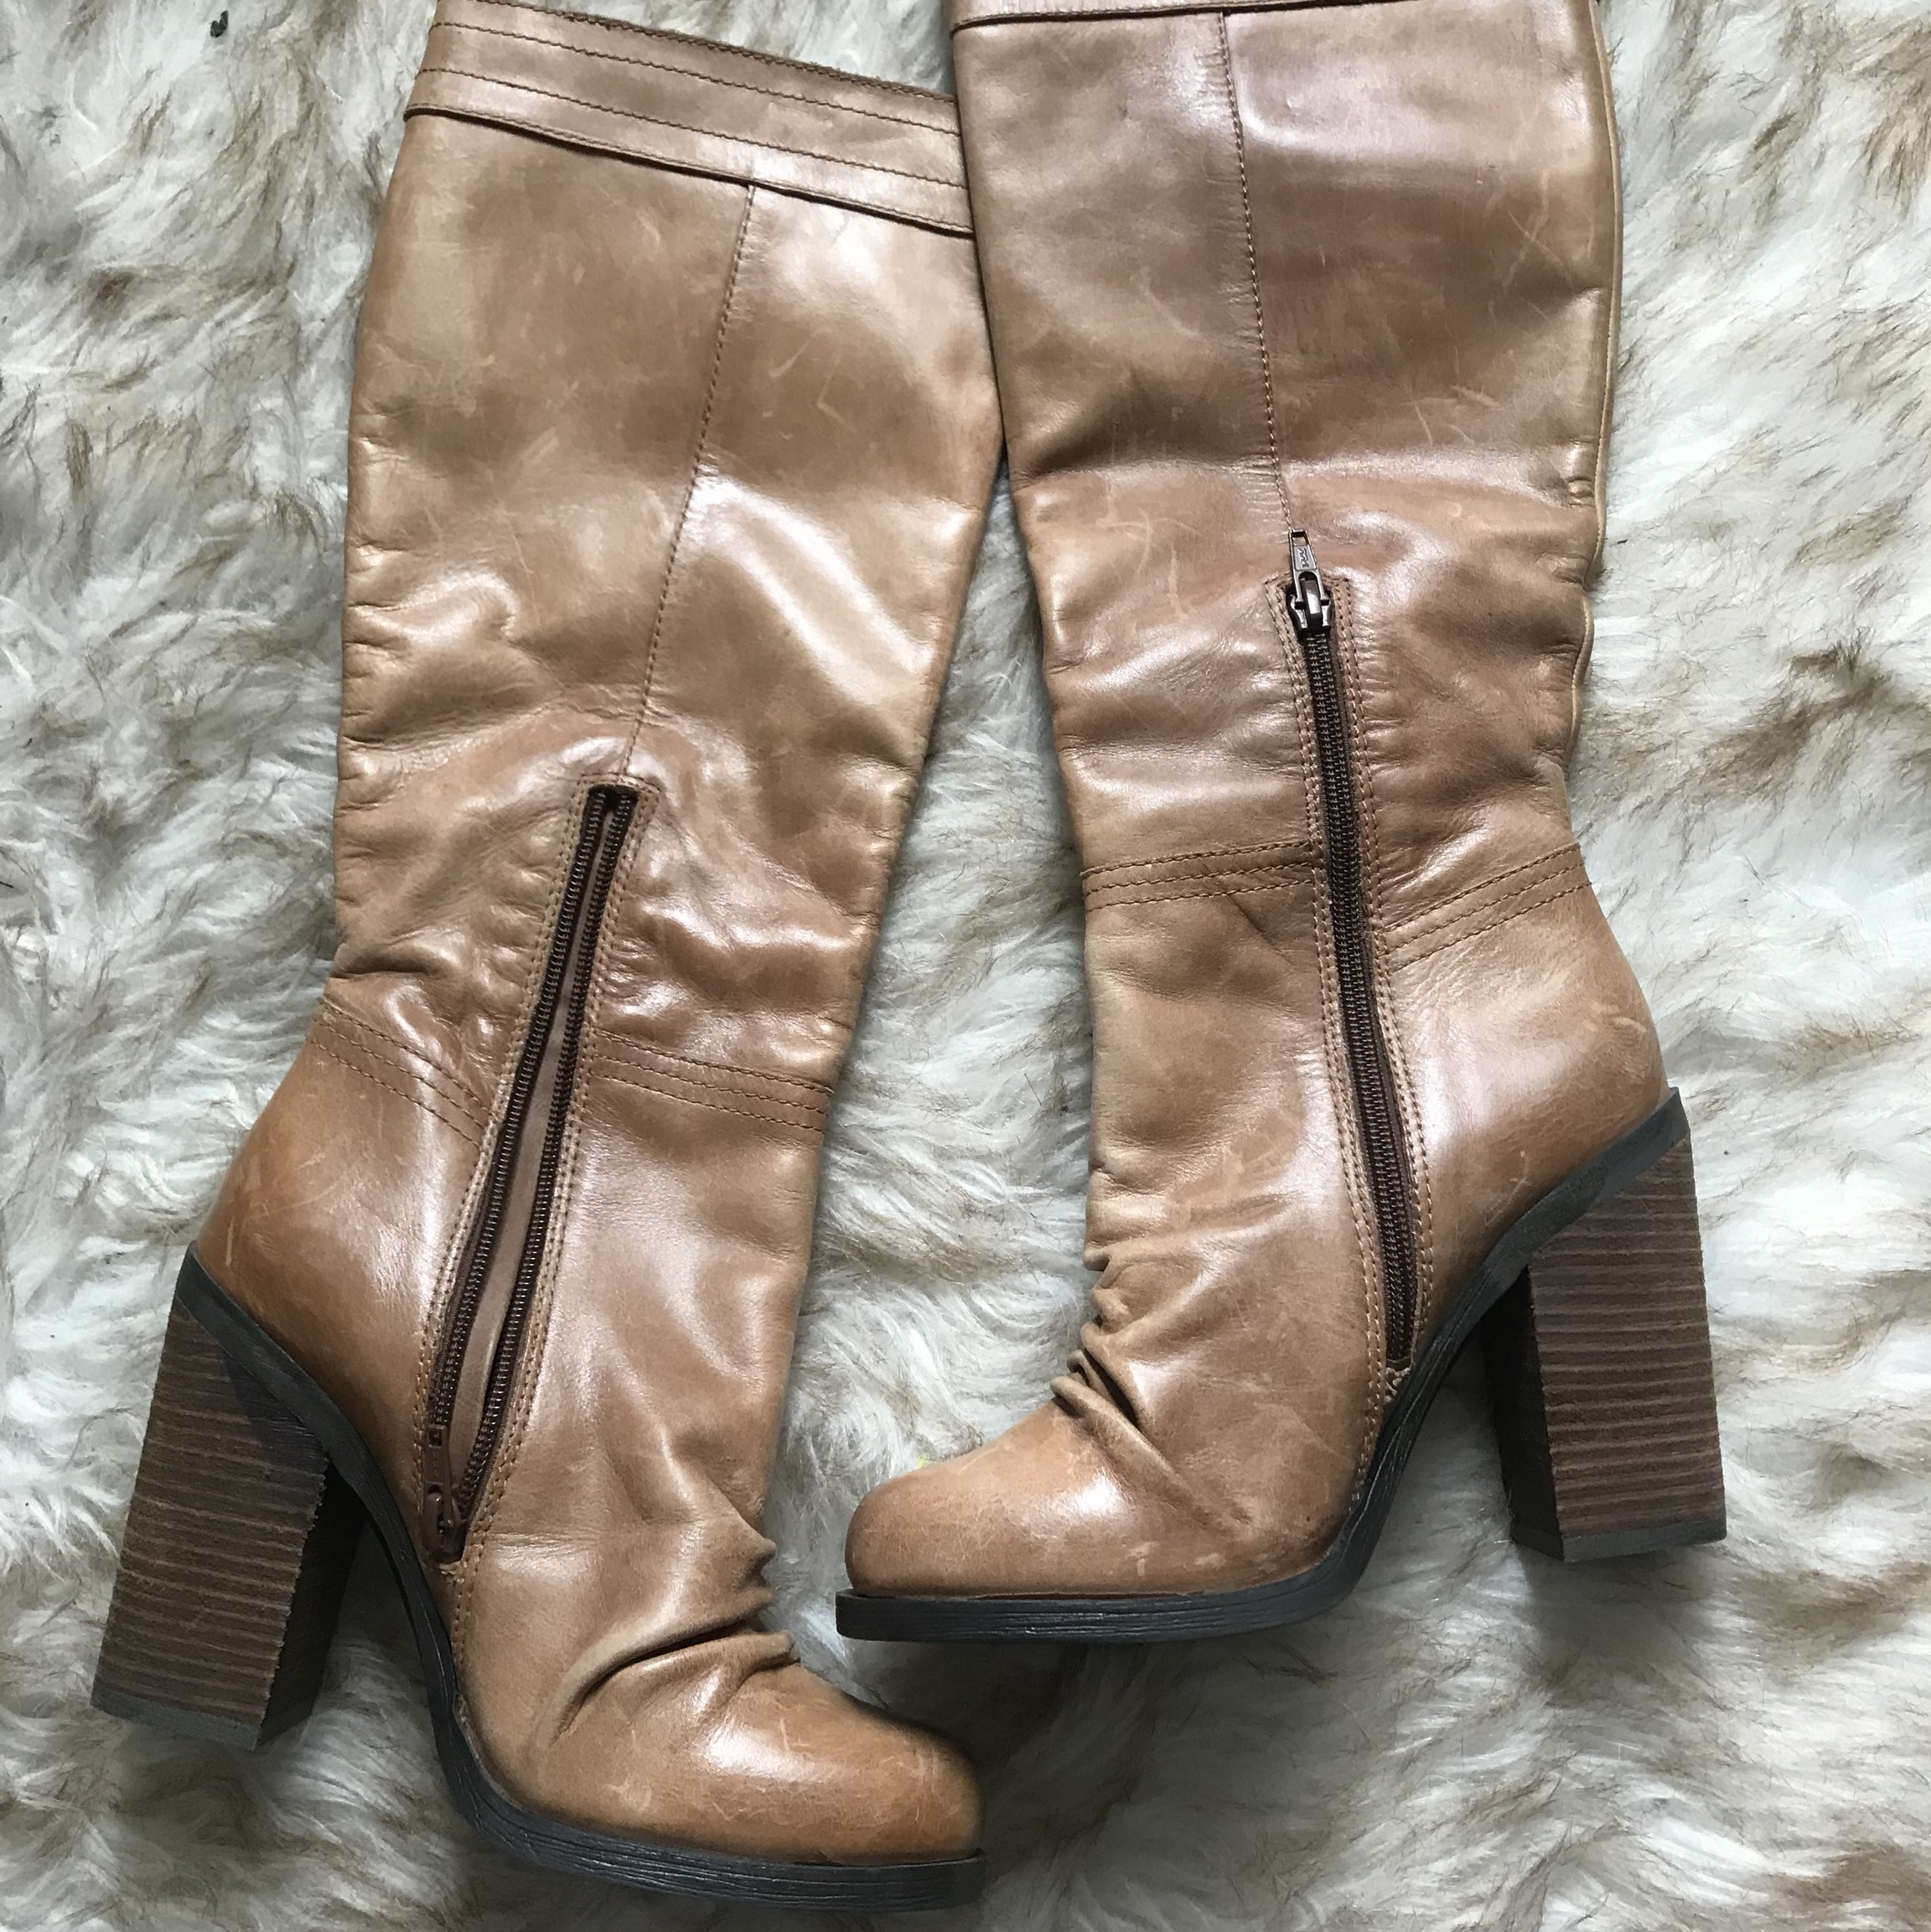 4f7a07e6c28 JESSICA SIMPSON tan leather knee high boots. Size... - Depop